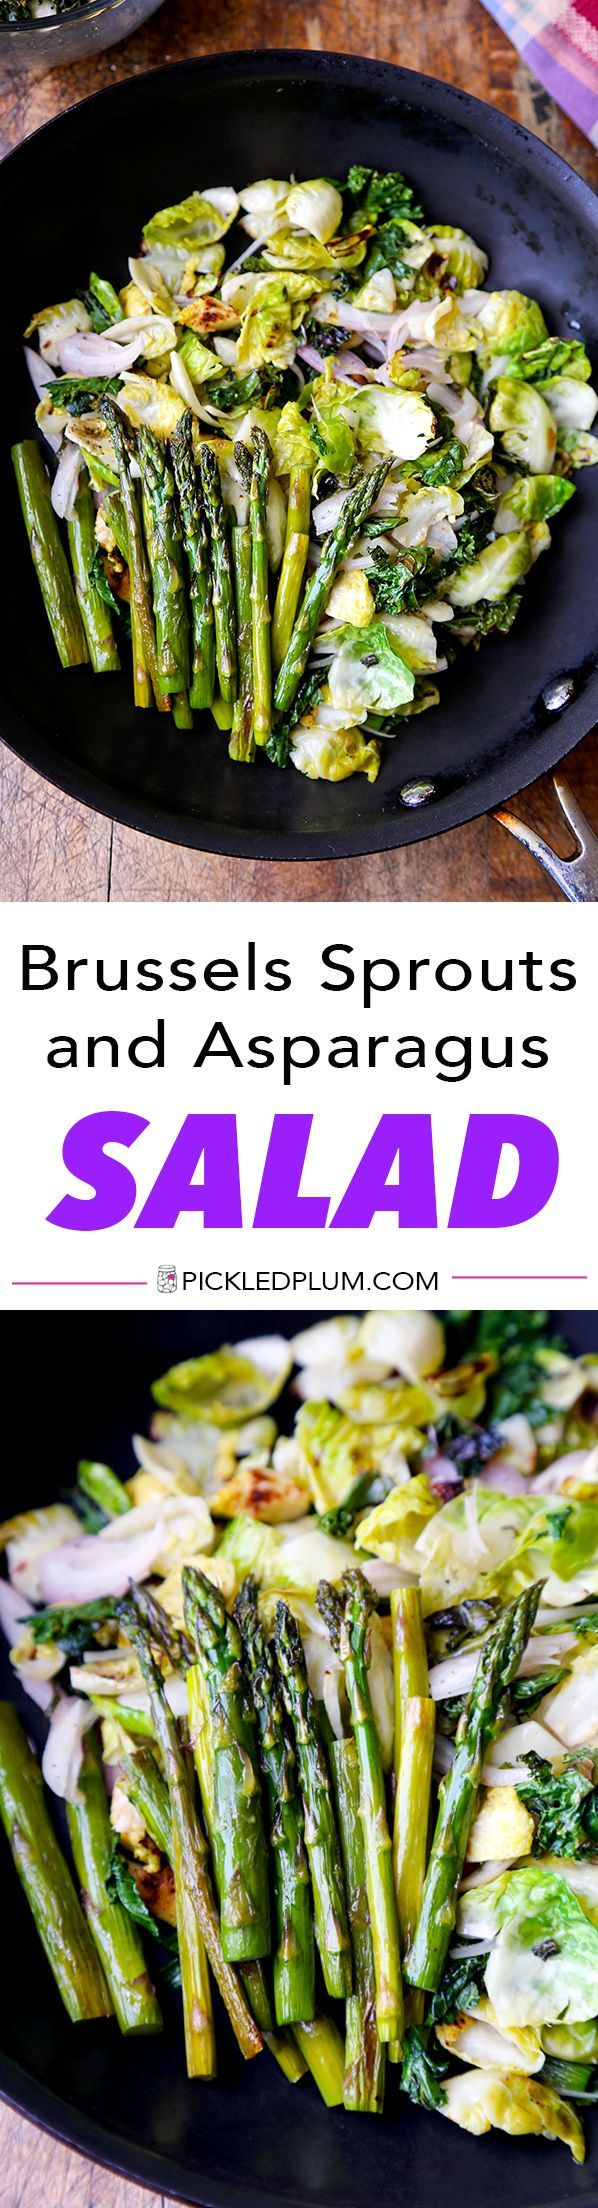 Brussels Sprouts and Asparagus Salad - Baked and lightly fried asparagus, kale and Brussels sprouts tossed in a shallot and white wine vinegar dressing. Healthy, vegan, gluten free, recipe | pickledplum.com